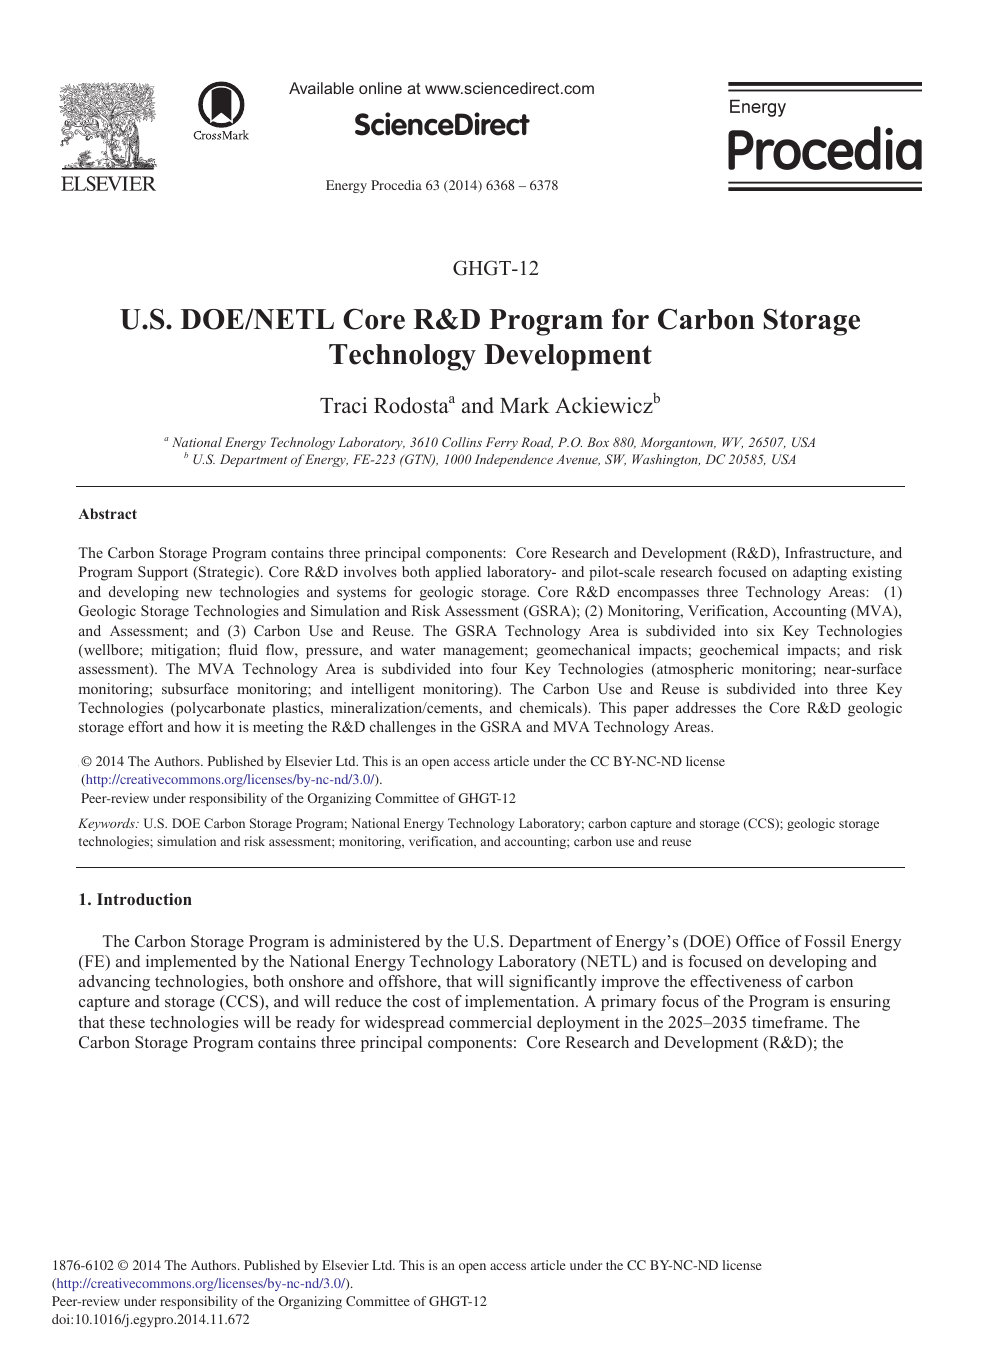 U S  DOE/NETL Core R&D Program for Carbon Storage Technology